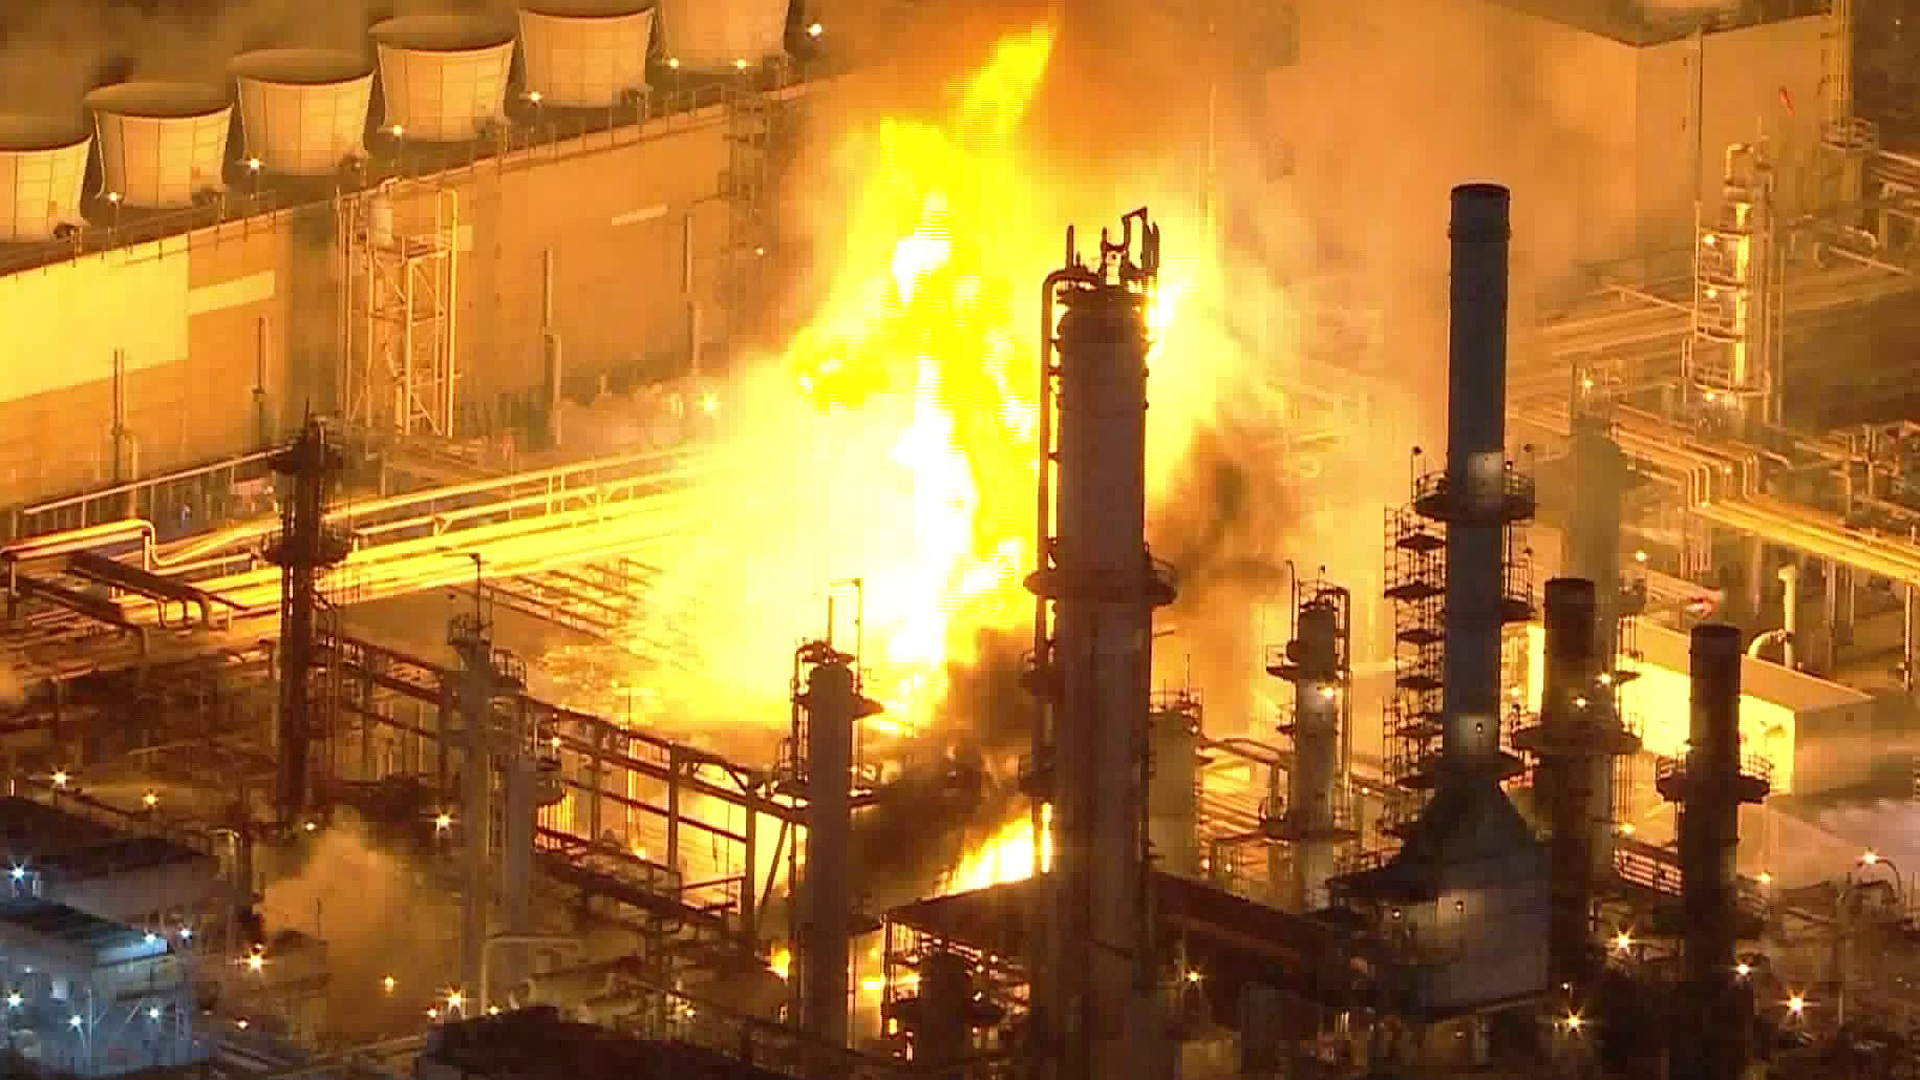 Marathon Petroleum Corporation refinery in Carson caught fire on Feb. 25, 2020. (KTLA)